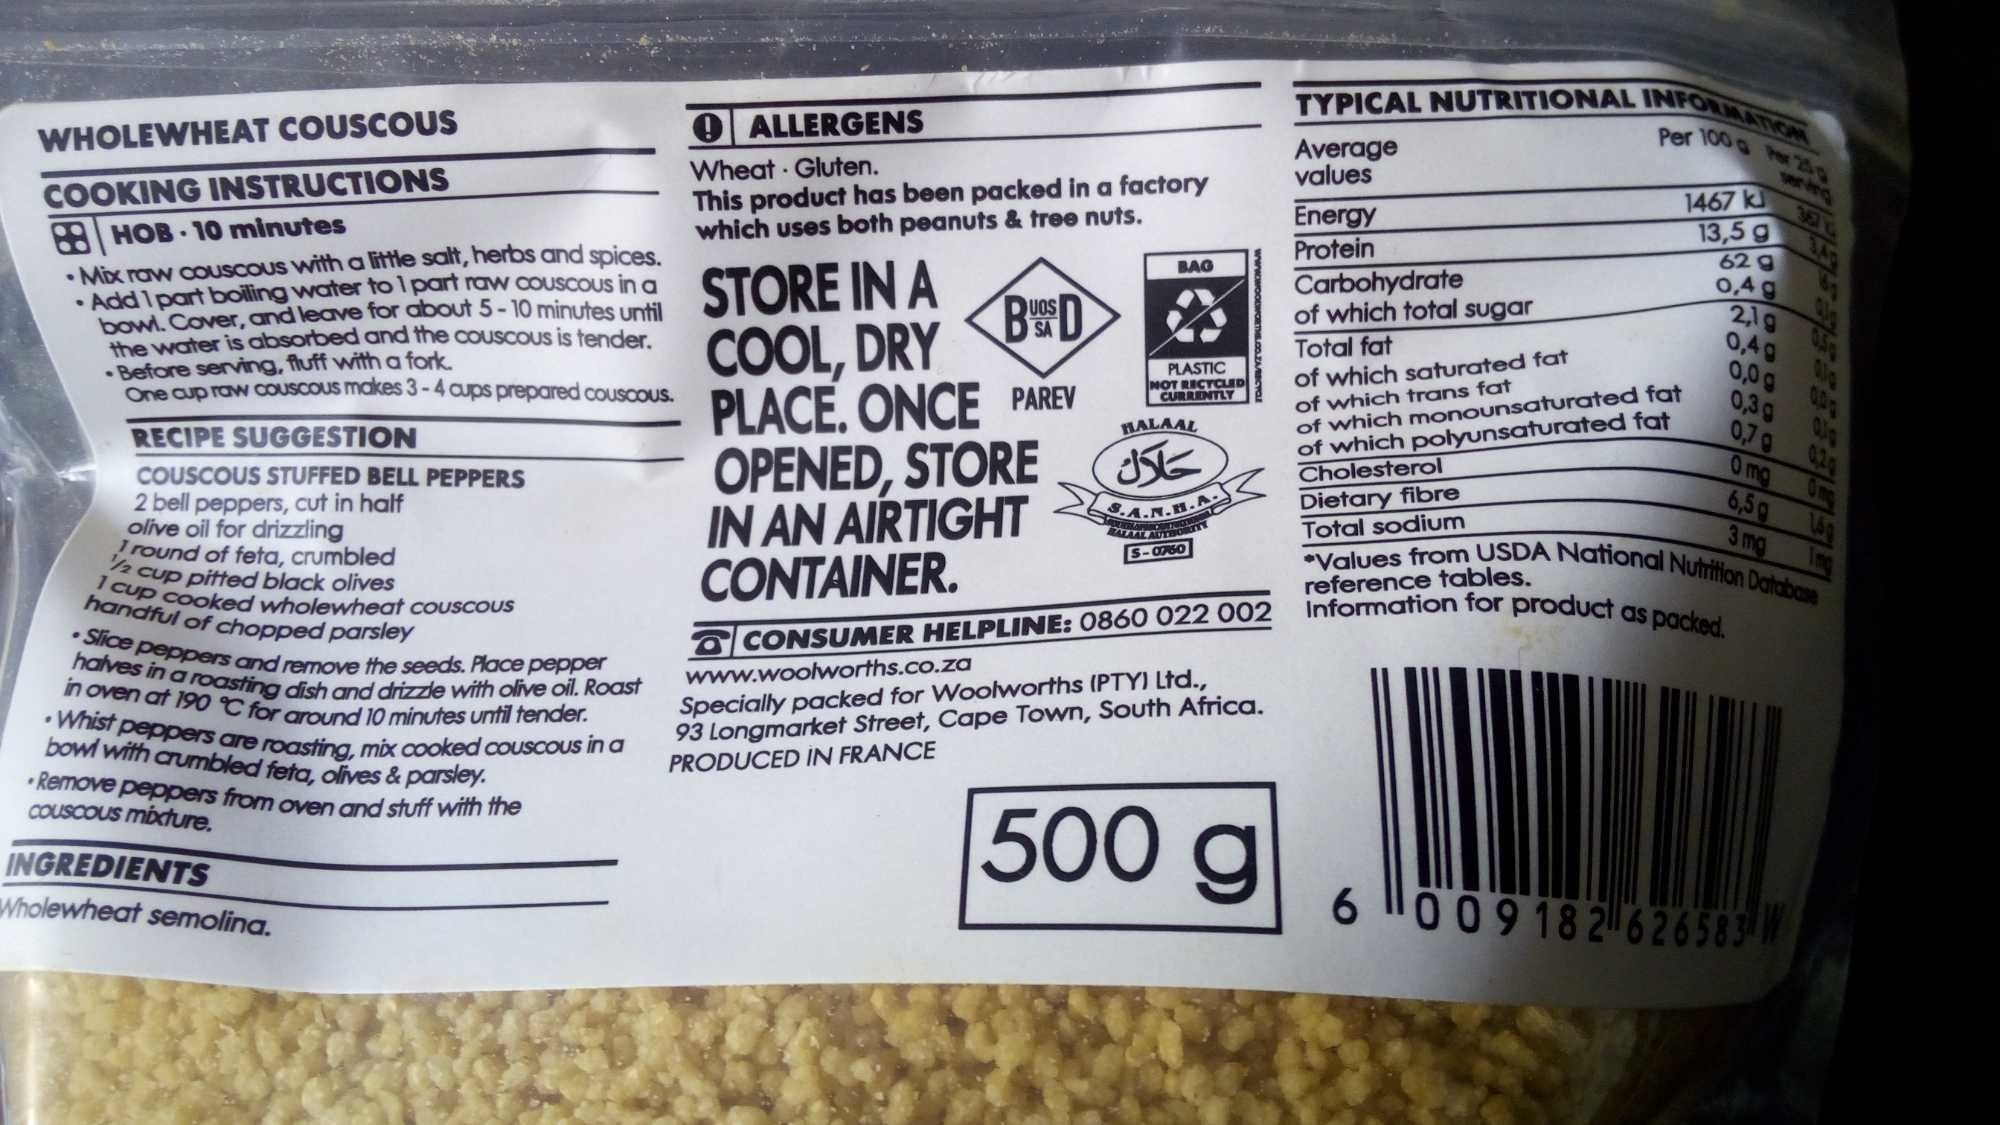 Wholeweat Couscous Woolworths 500g